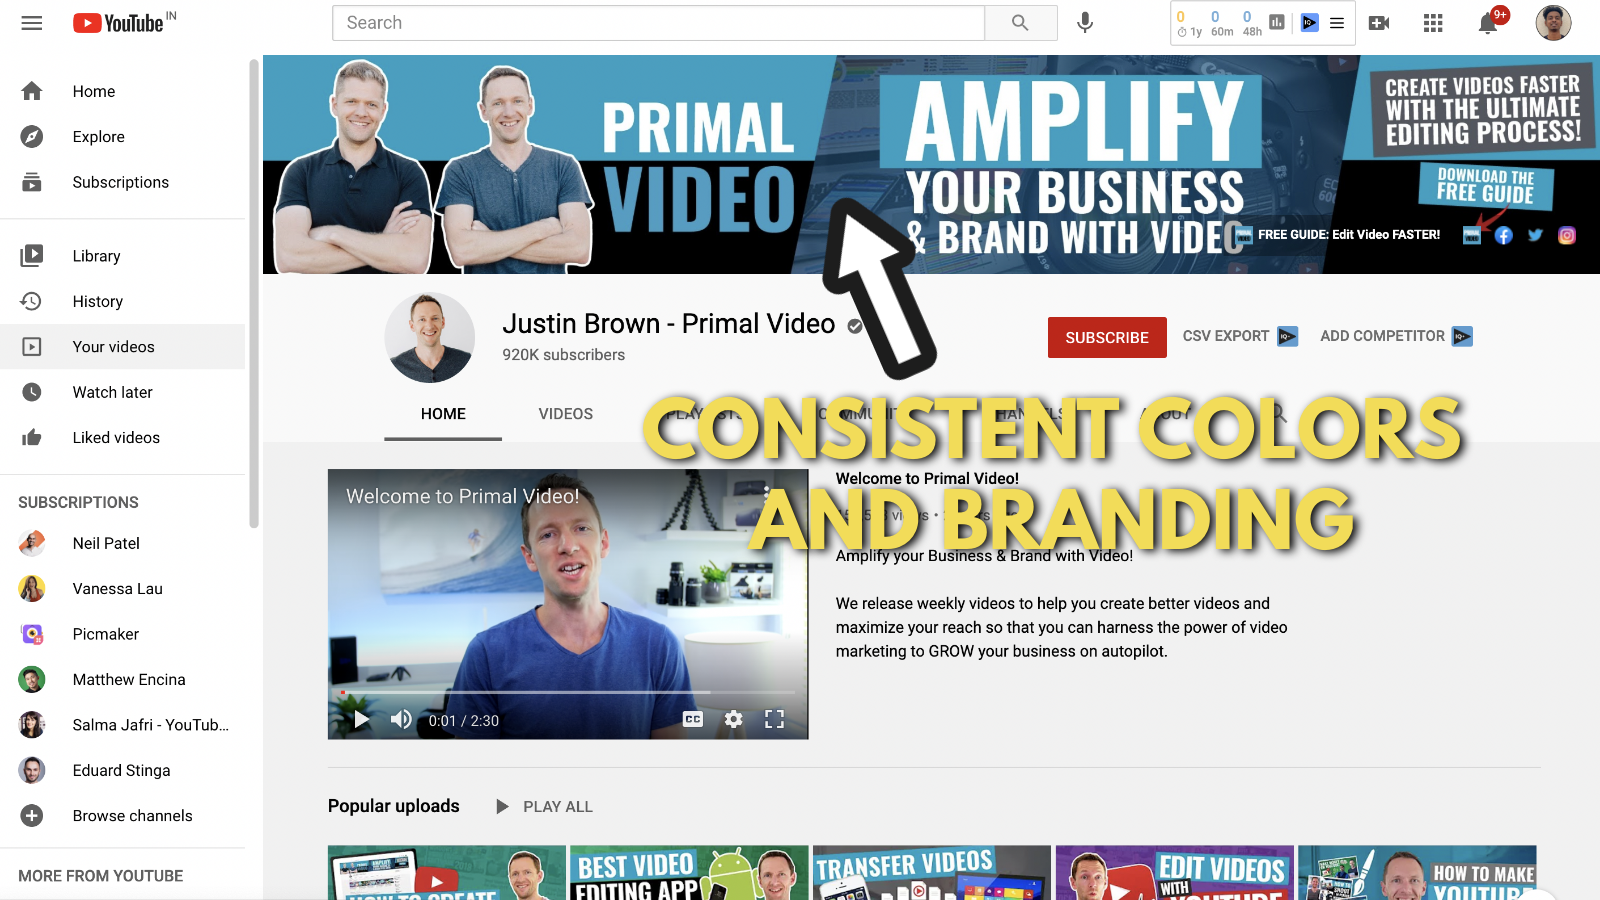 A screenshot of Primal video's YouTube channel 5